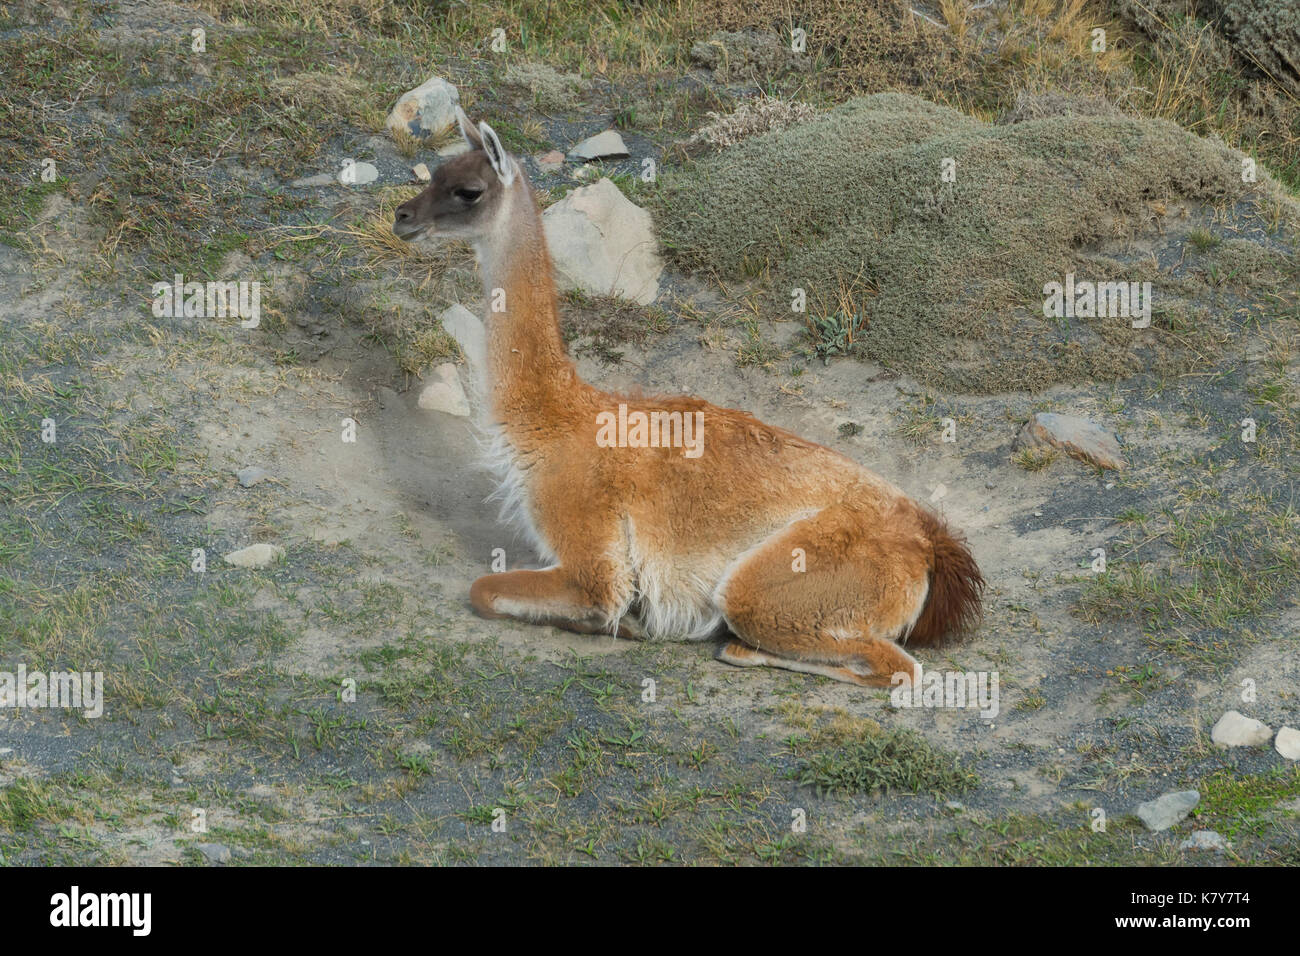 Guanaco (Lama guanicoe) rolling in the dust, Torres del Paine National Park, Chilean Patagonia, Chile - Stock Image